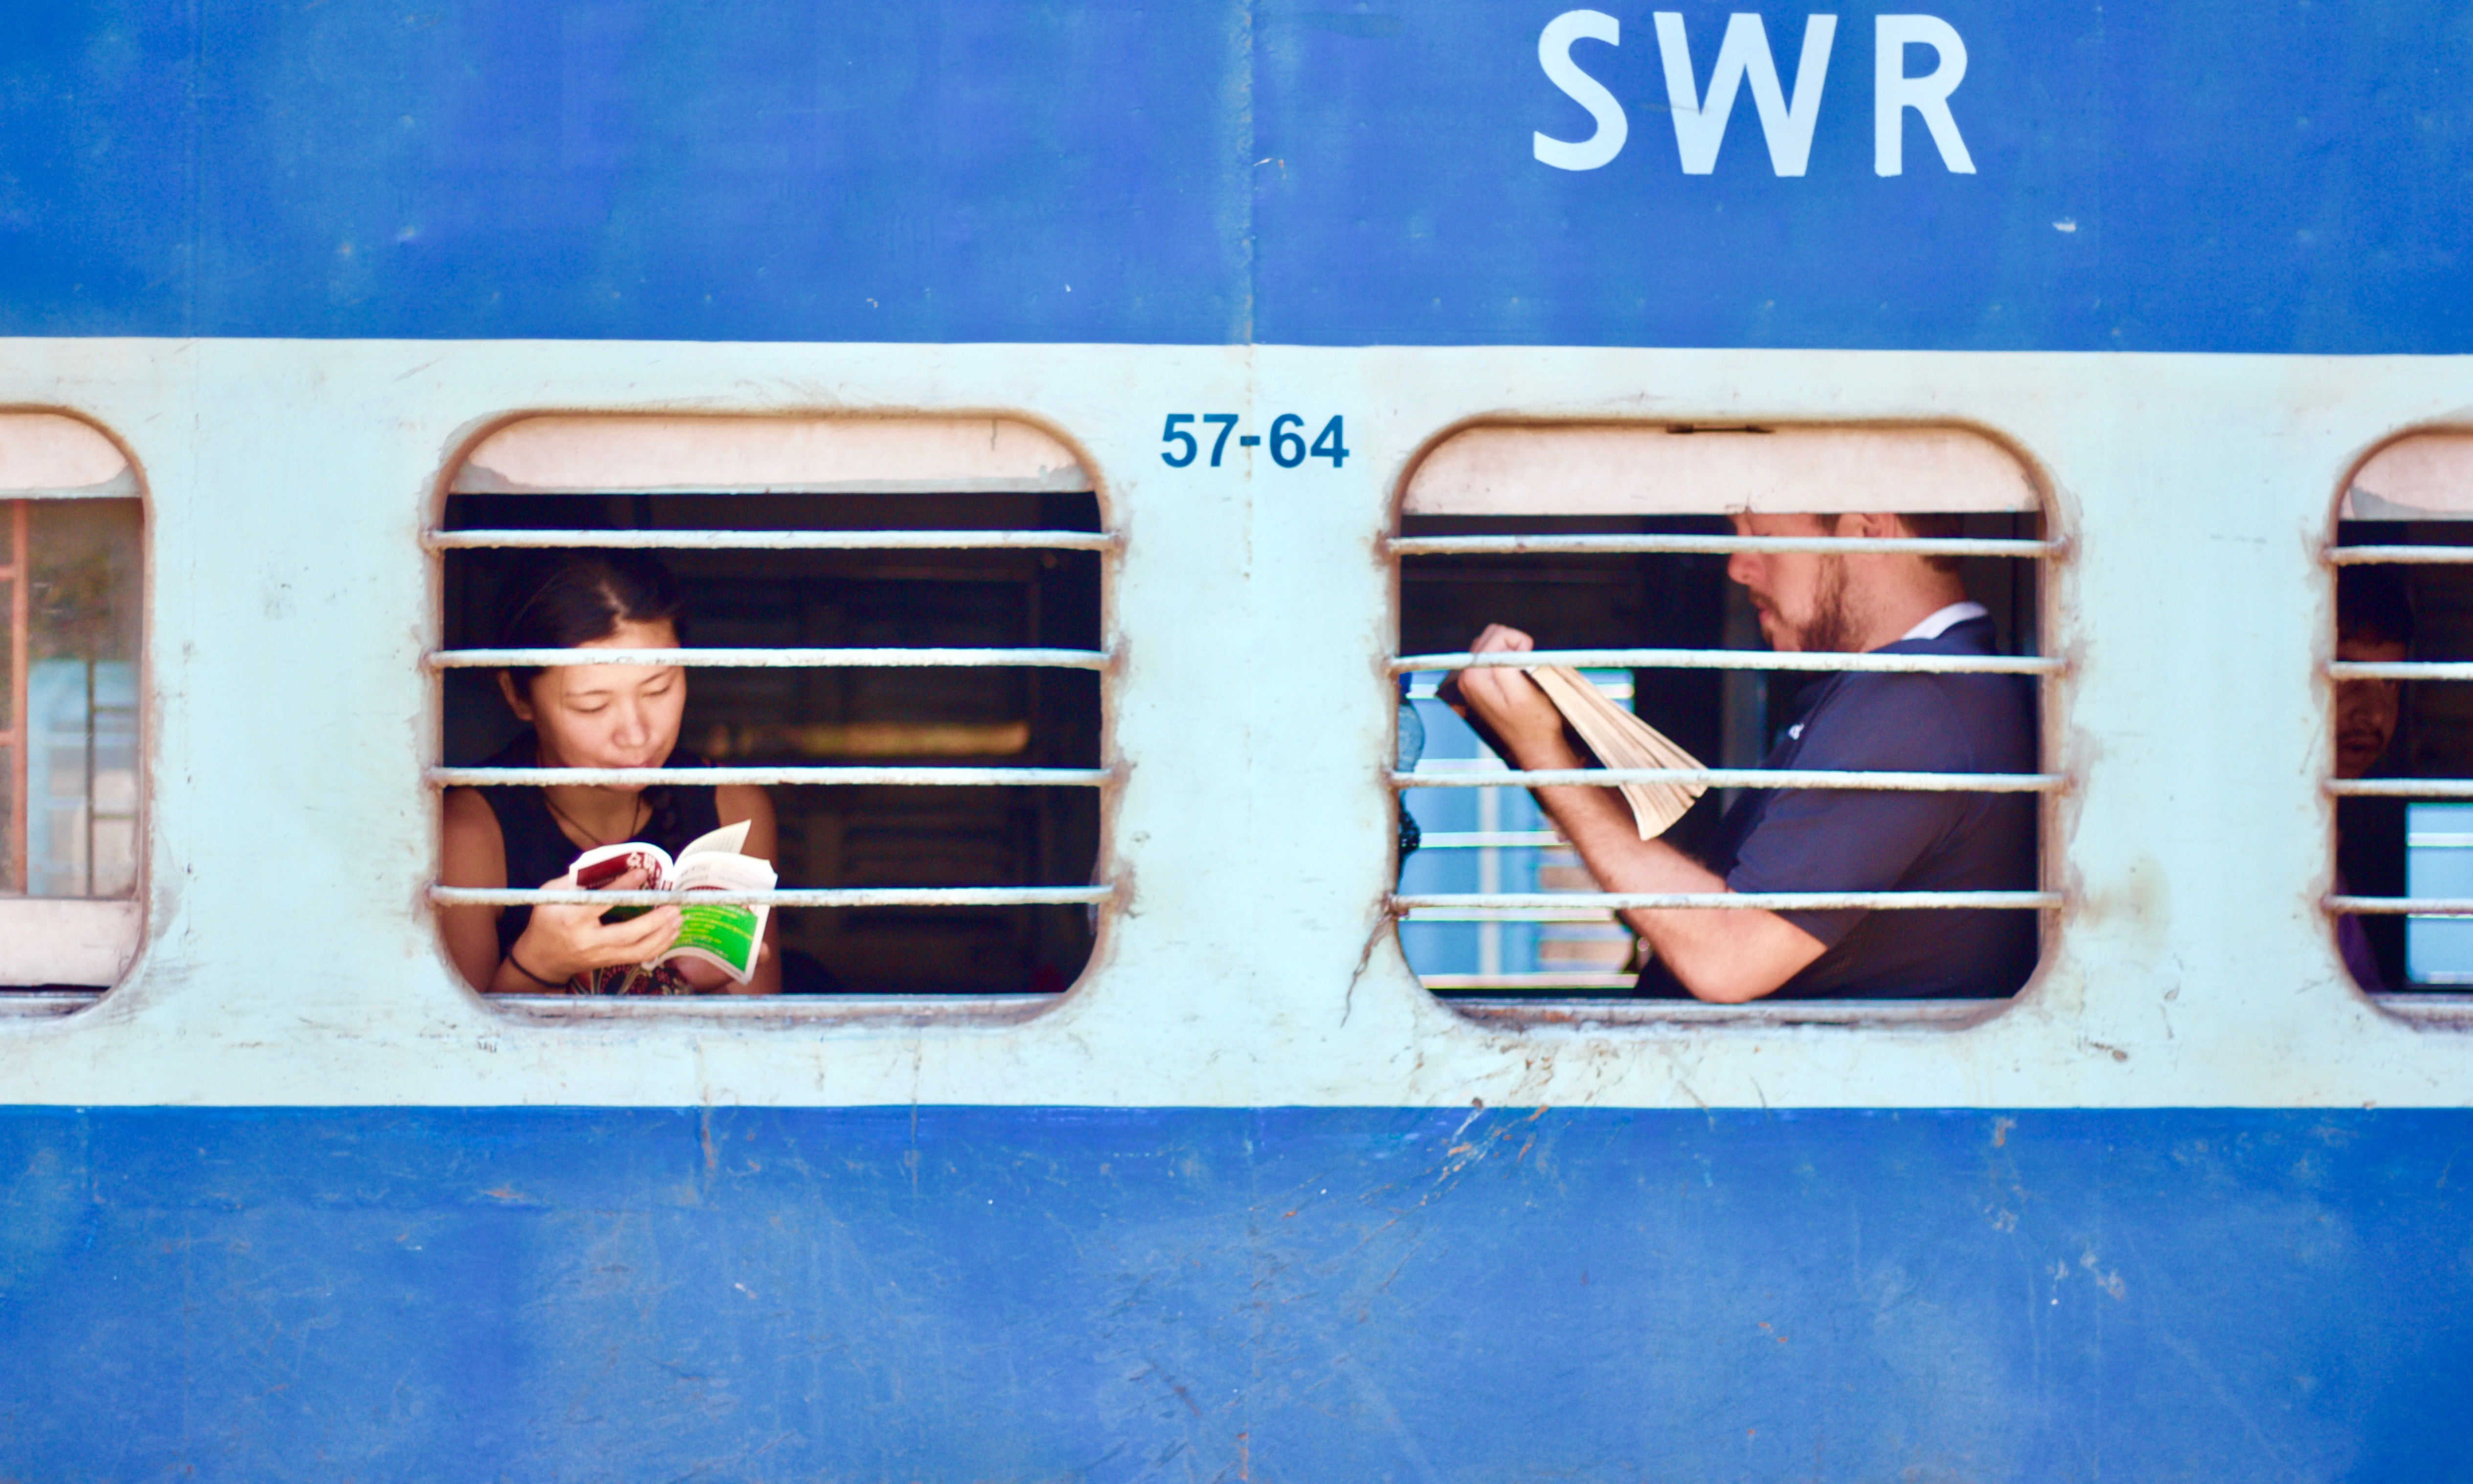 People on a train in India